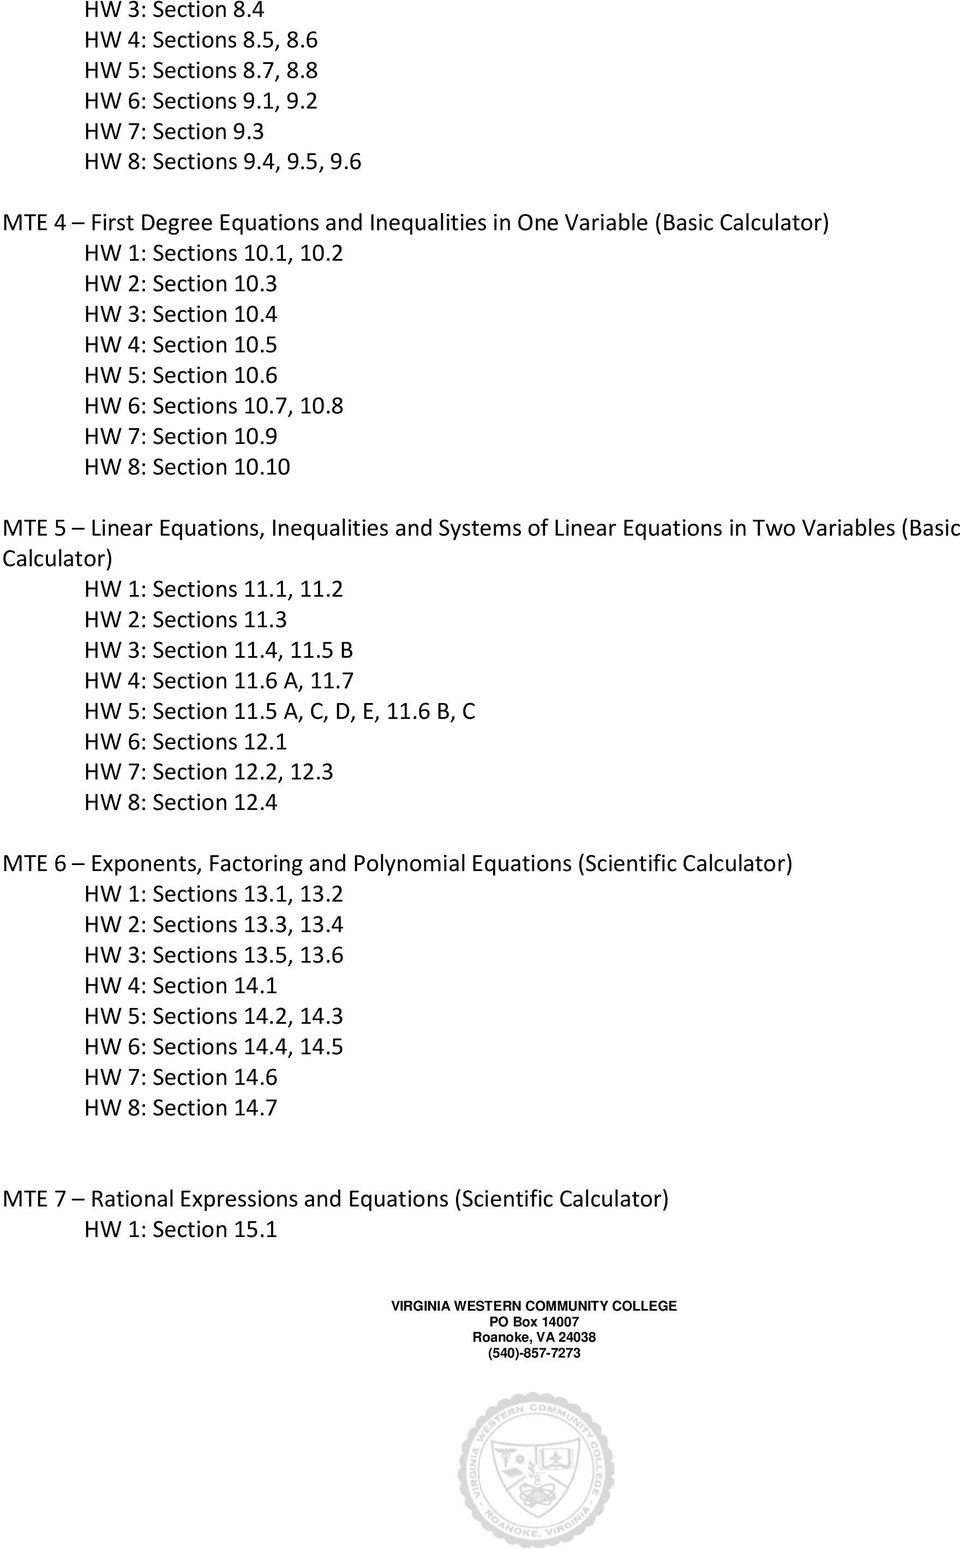 6 HW 6: Sections 10.7, 10.8 HW 7: Section 10.9 HW 8: Section 10.10 MTE 5 Linear Equations, Inequalities and Systems of Linear Equations in Two Variables (Basic Calculator) HW 1: Sections 11.1, 11.